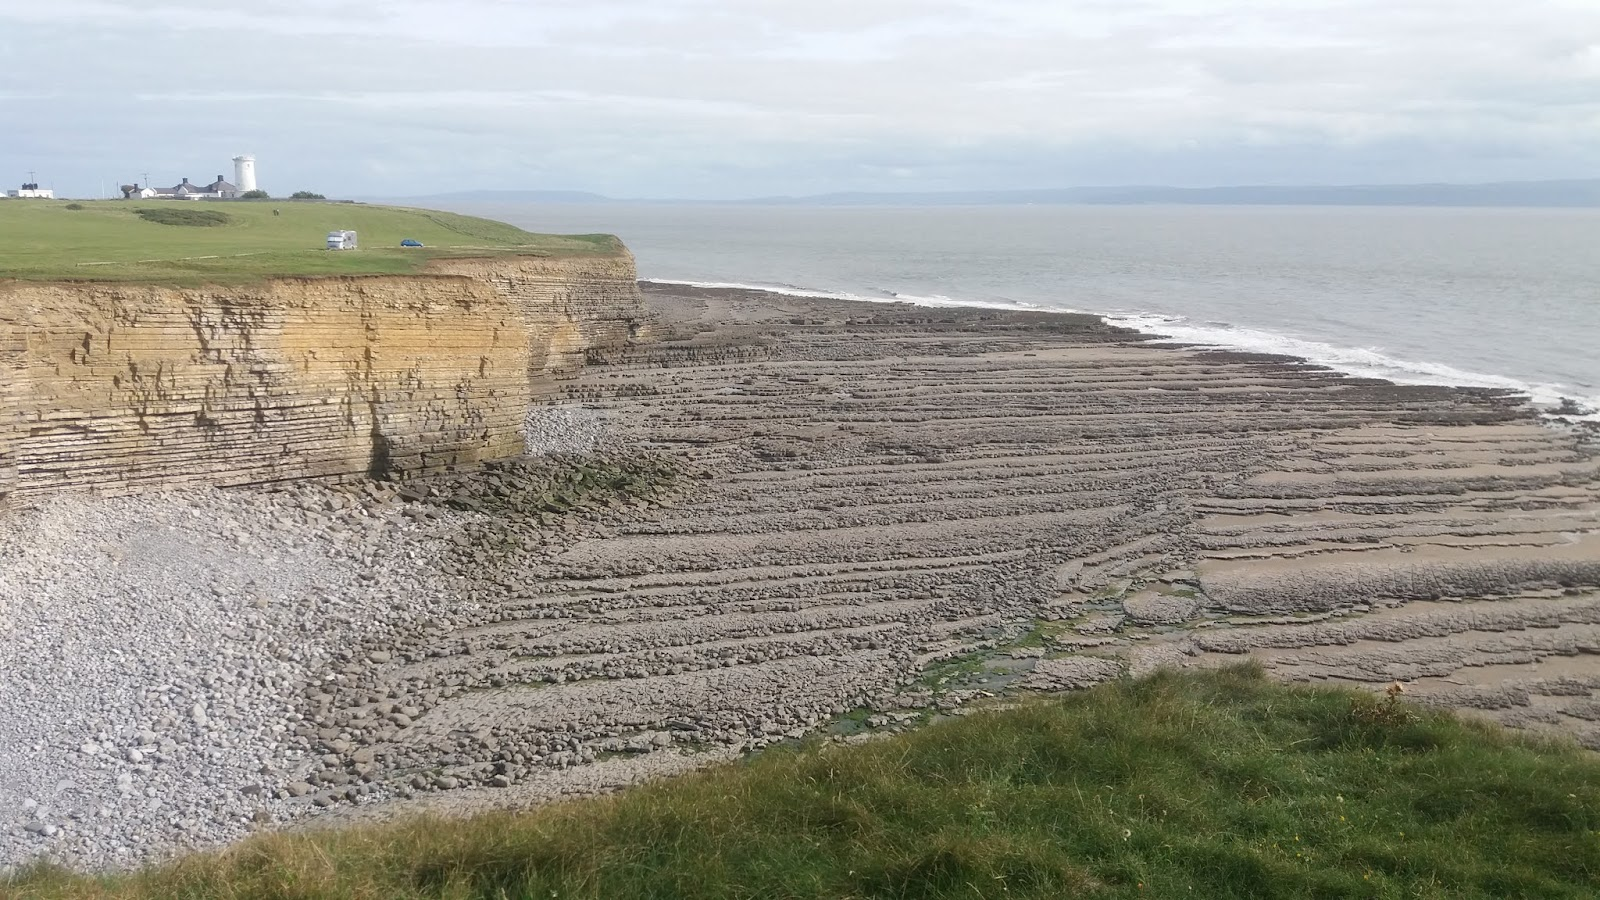 20170824 161504 Nash point, striated cliffs, and and rock patterns on beach below